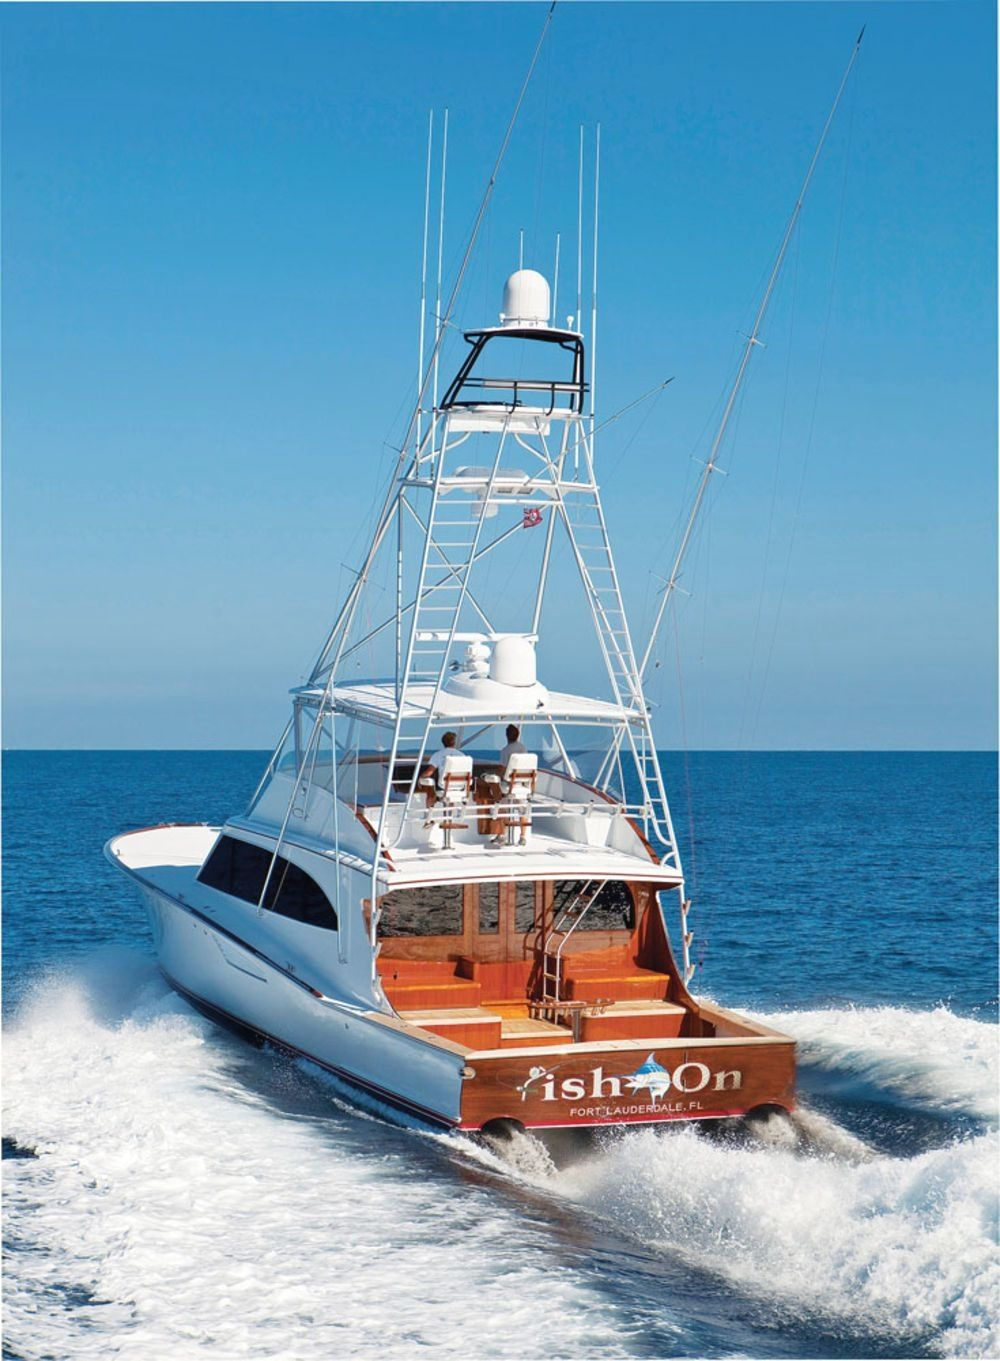 Ocean fishing boats by Pdailey on Boats in 2020 Sport